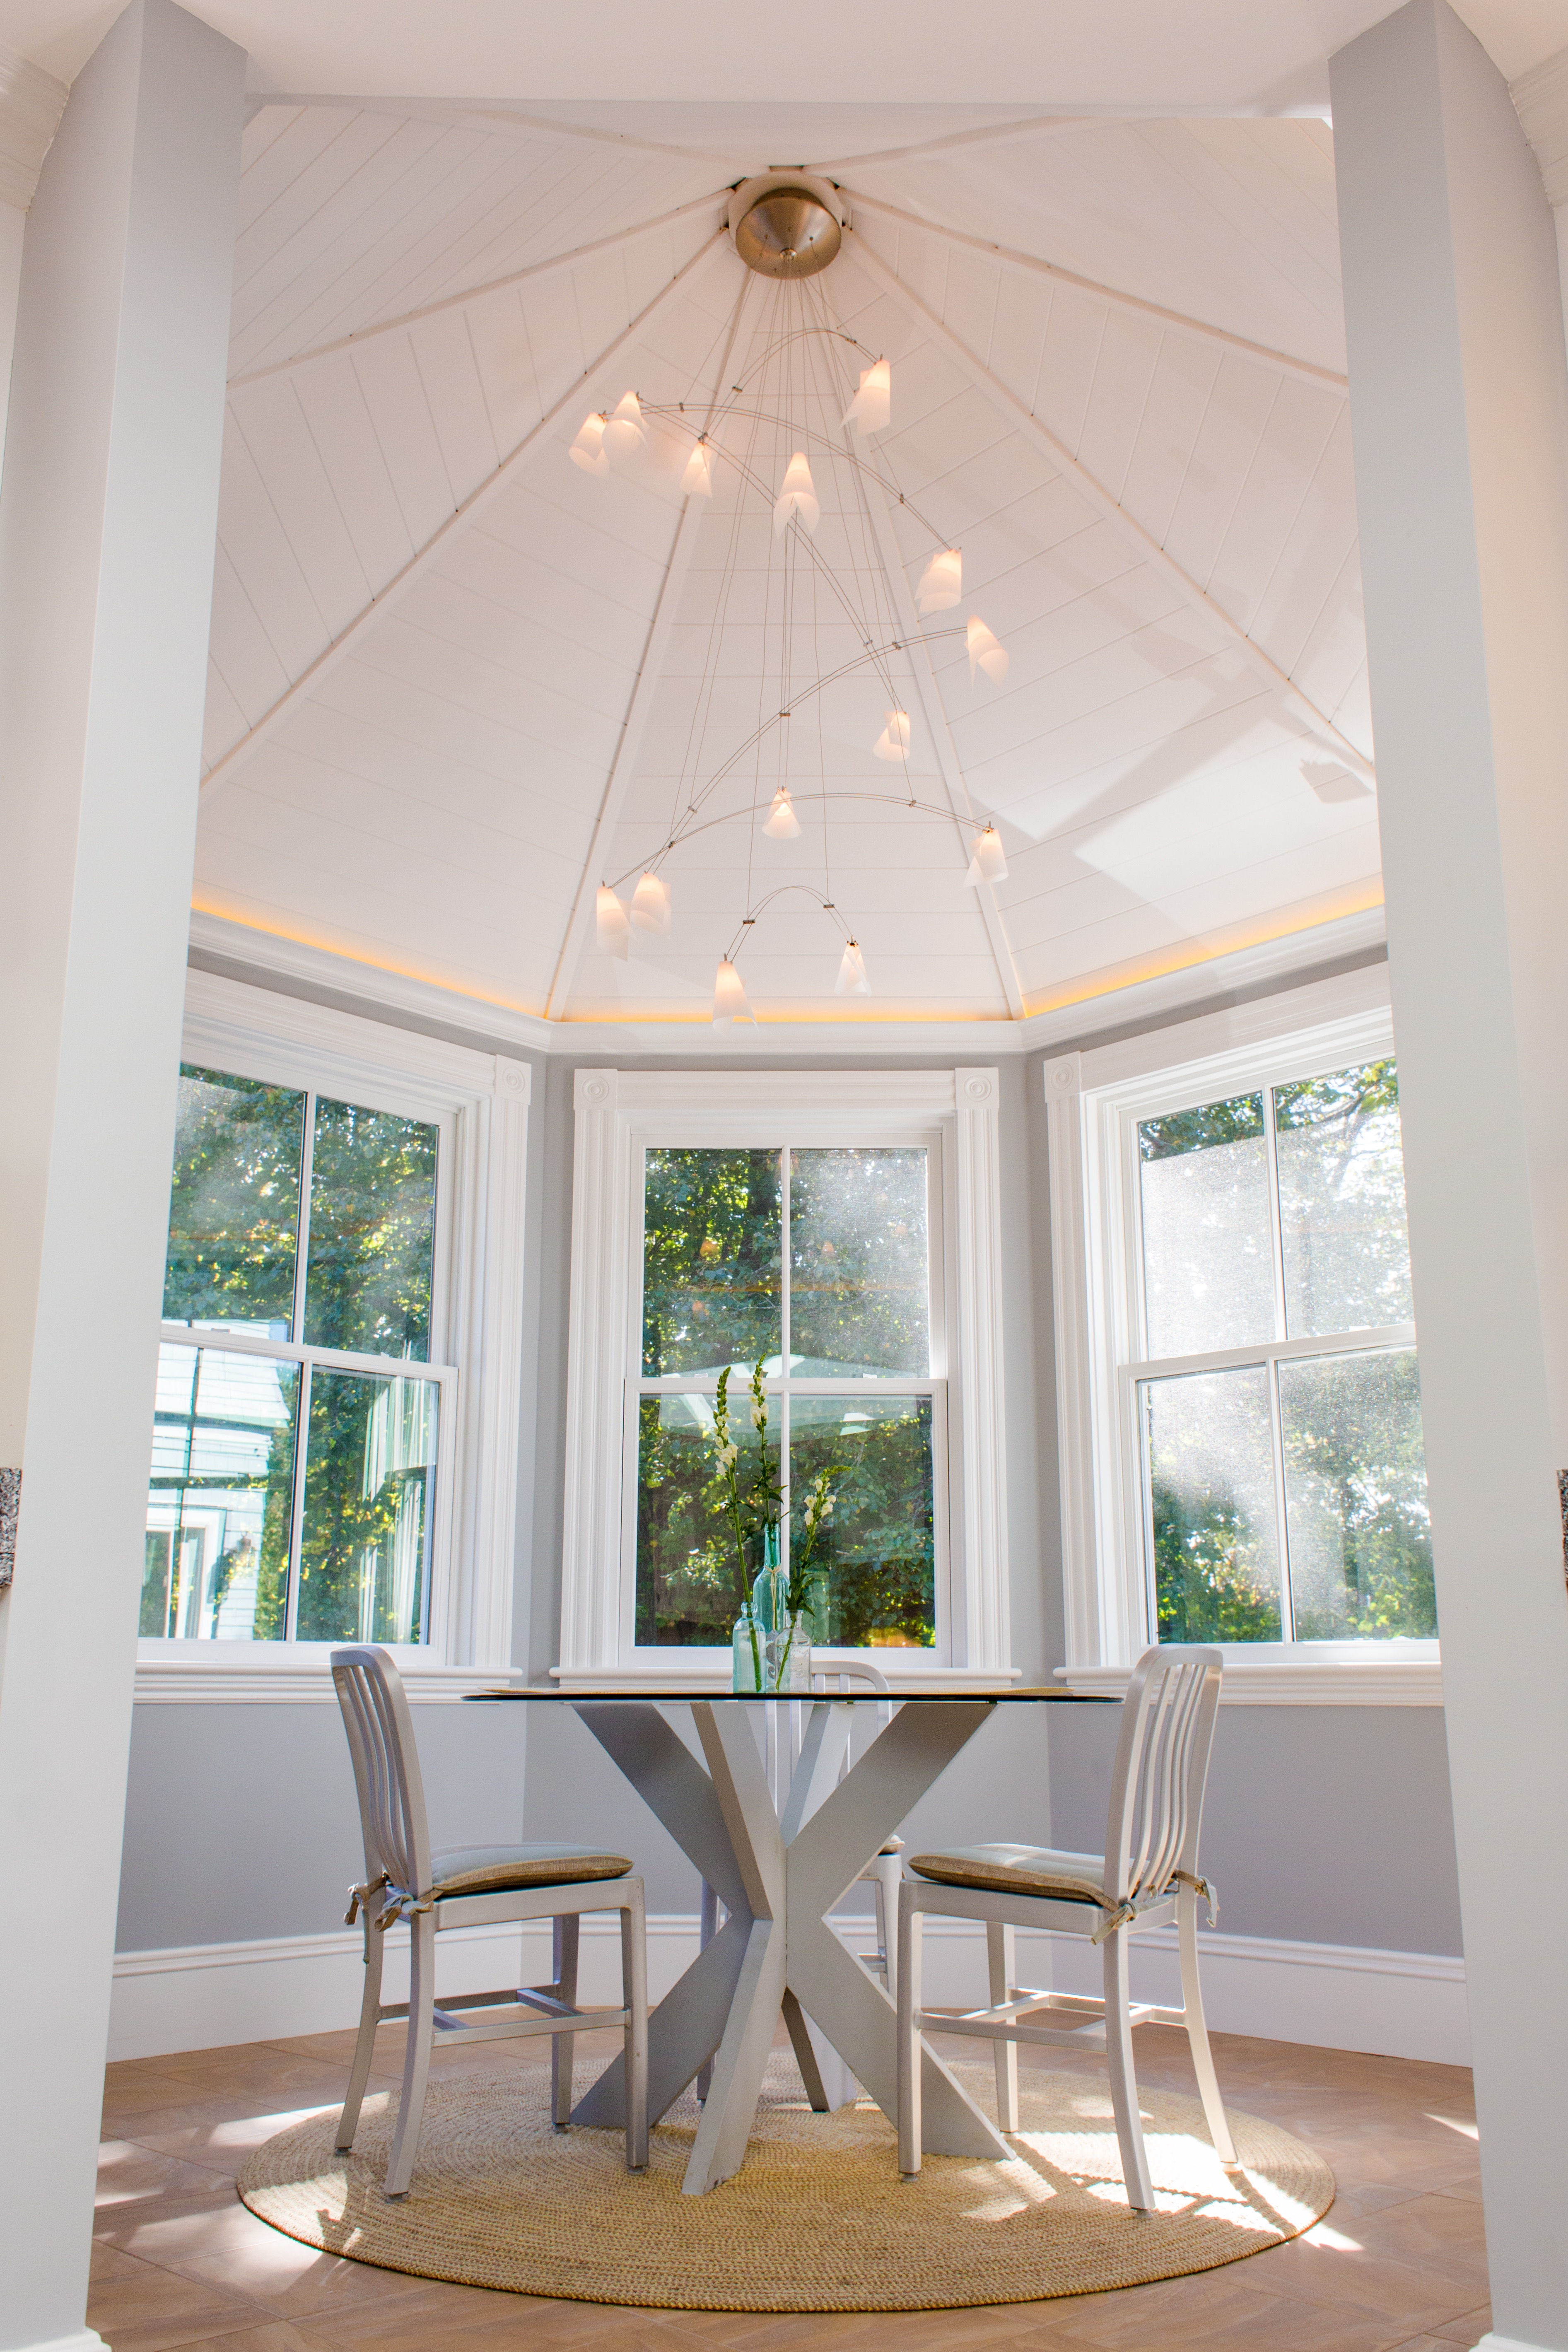 Modern Domed Ceiling For Dining Room Interior (View 23 of 31)